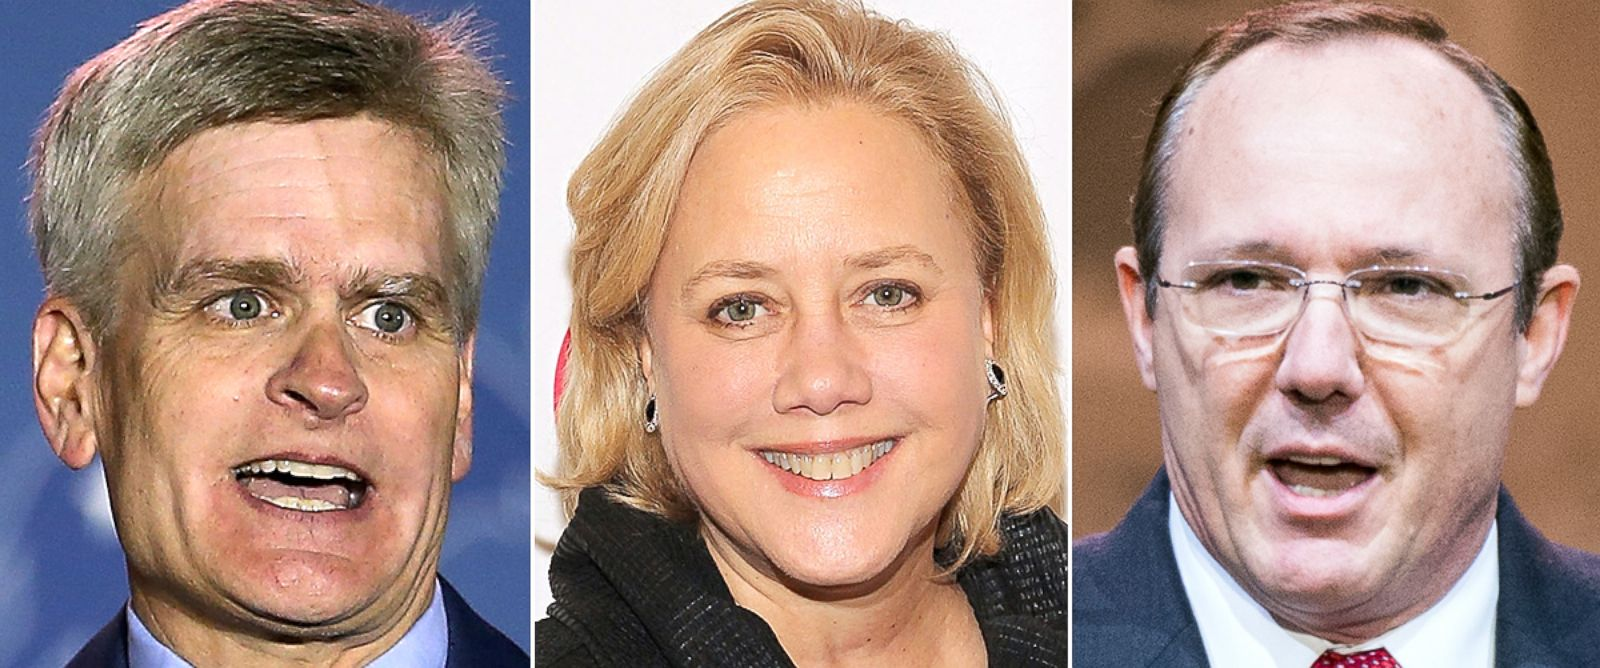 PHOTO: Rep. Bill Cassidy, left, Sen. Mary Landrieu, and Rob Maness are all running for U.S. Senate in Louisiana.